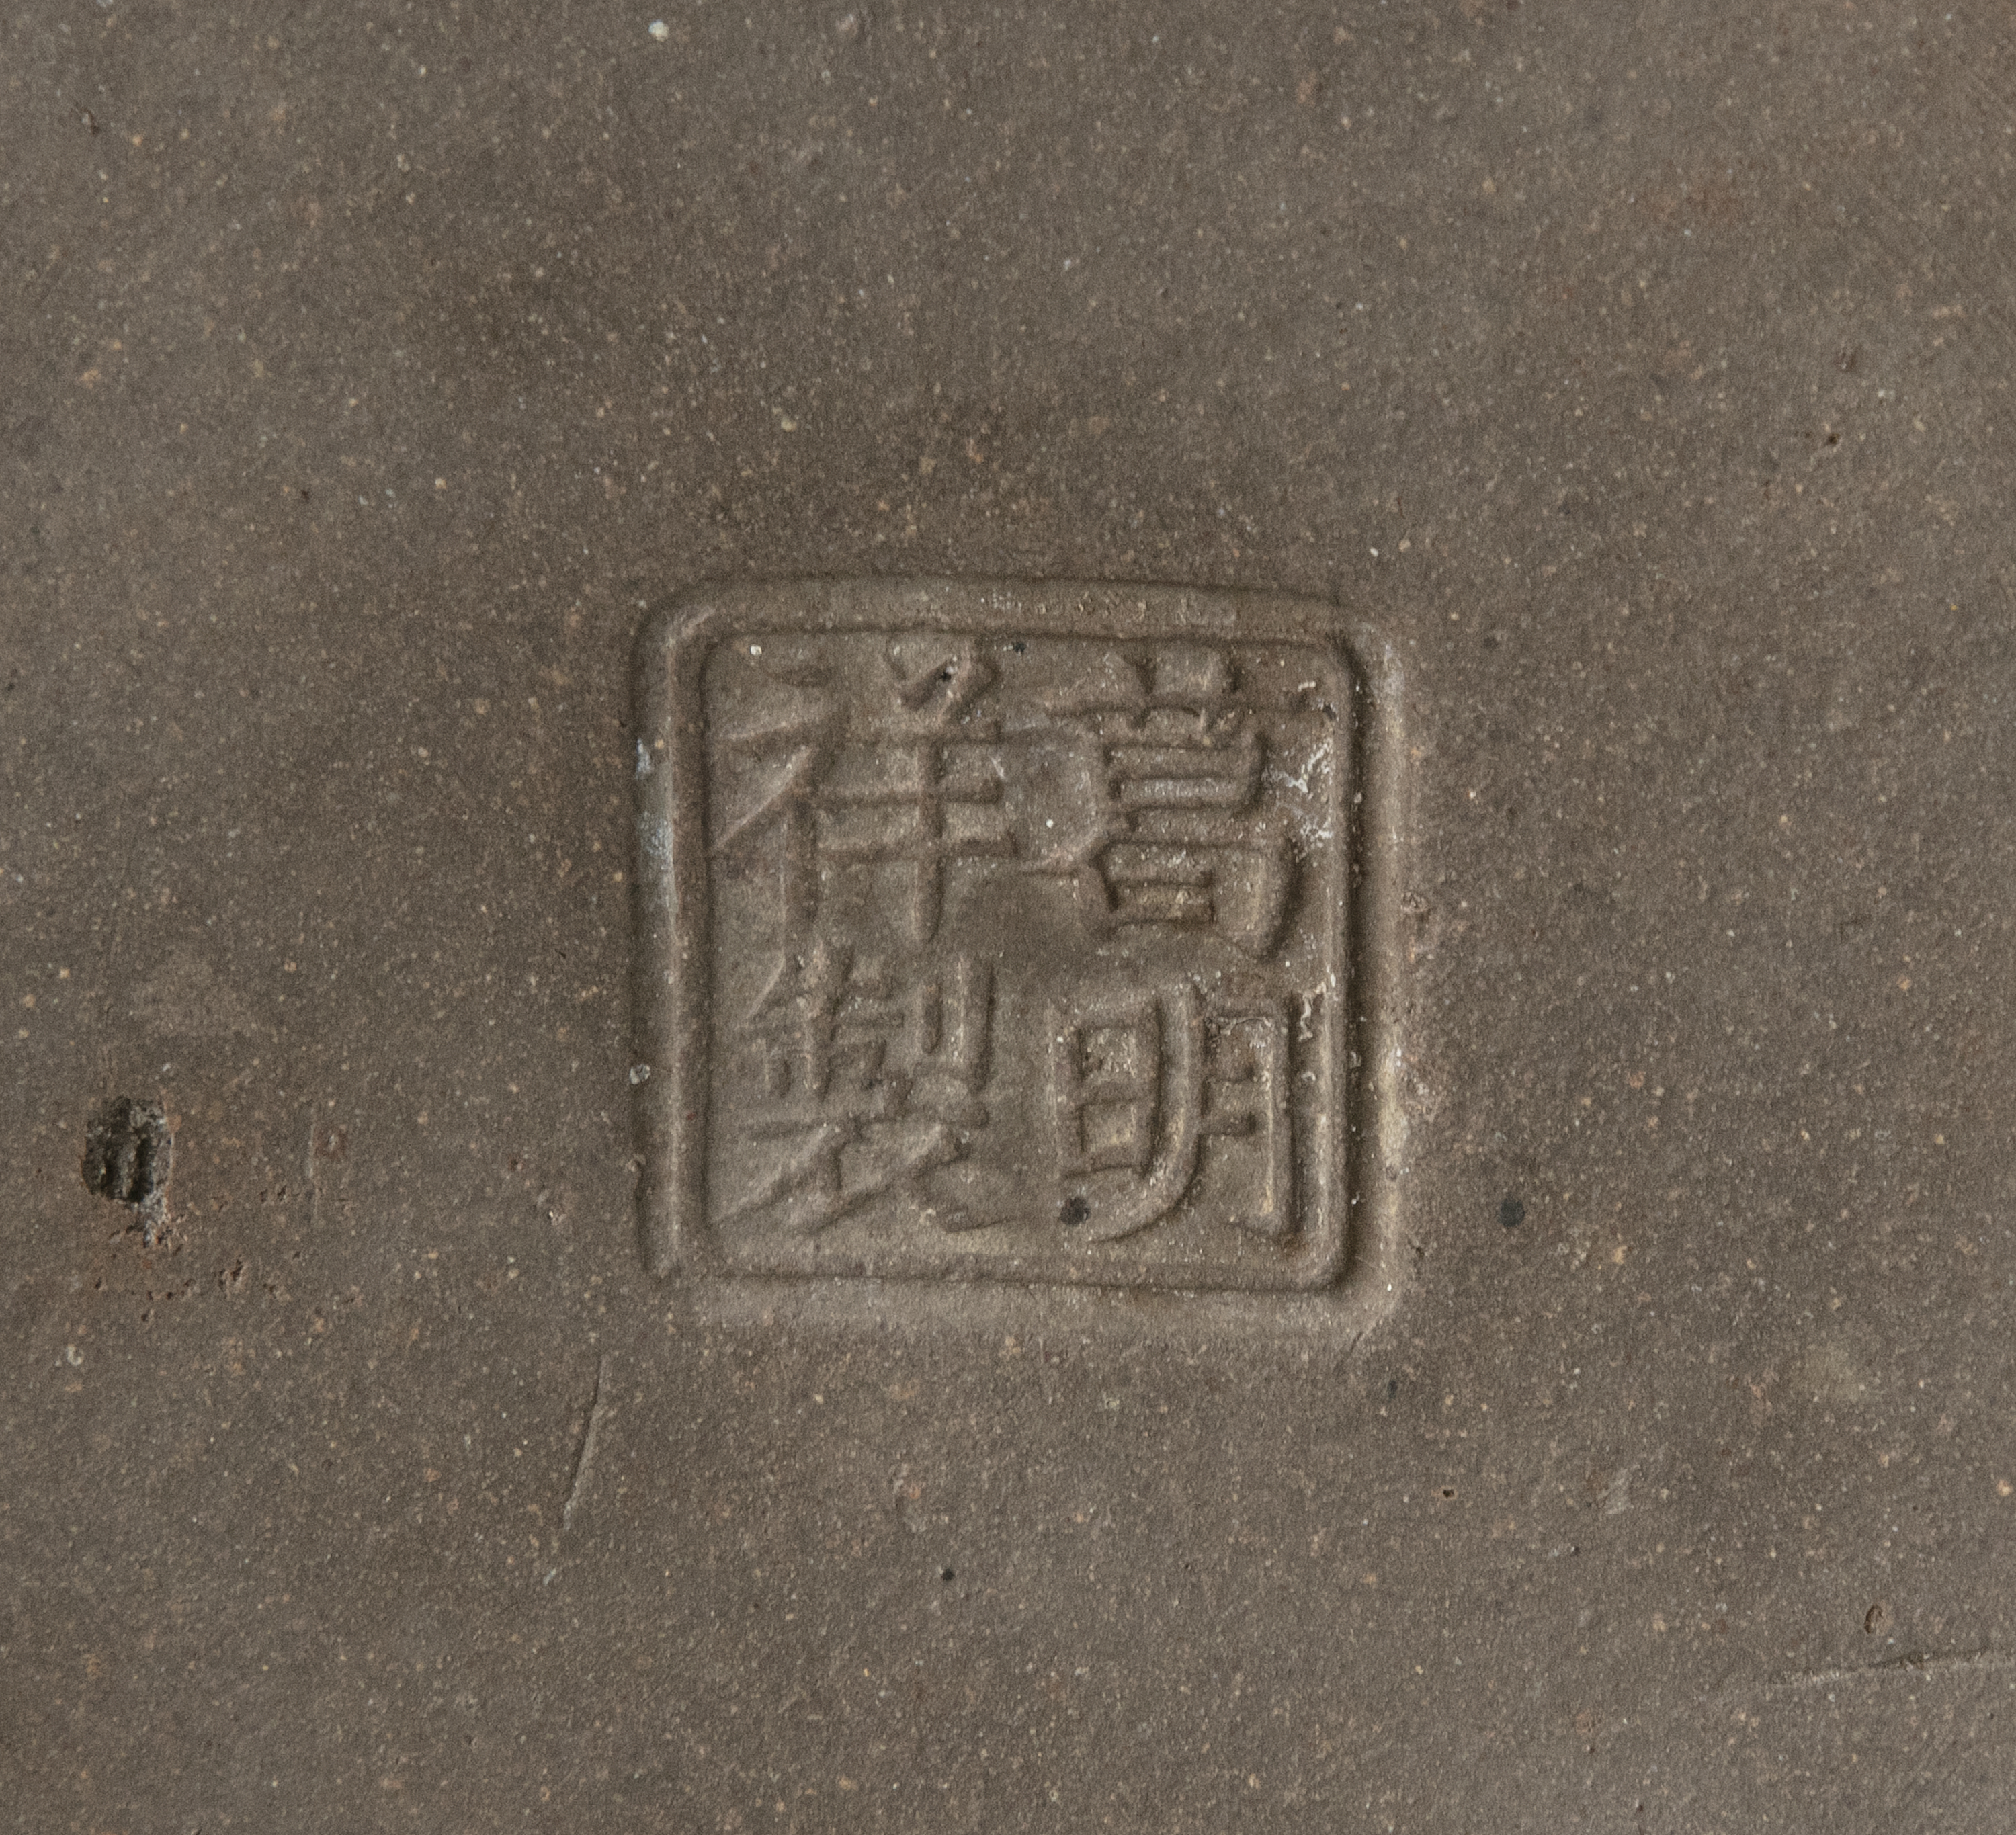 A ROBIN'S EGG GLAZED YIXING VASE BEARING THE SEAL OF GE MINGXIANG 葛明祥 China, 18th century or later - Image 11 of 15